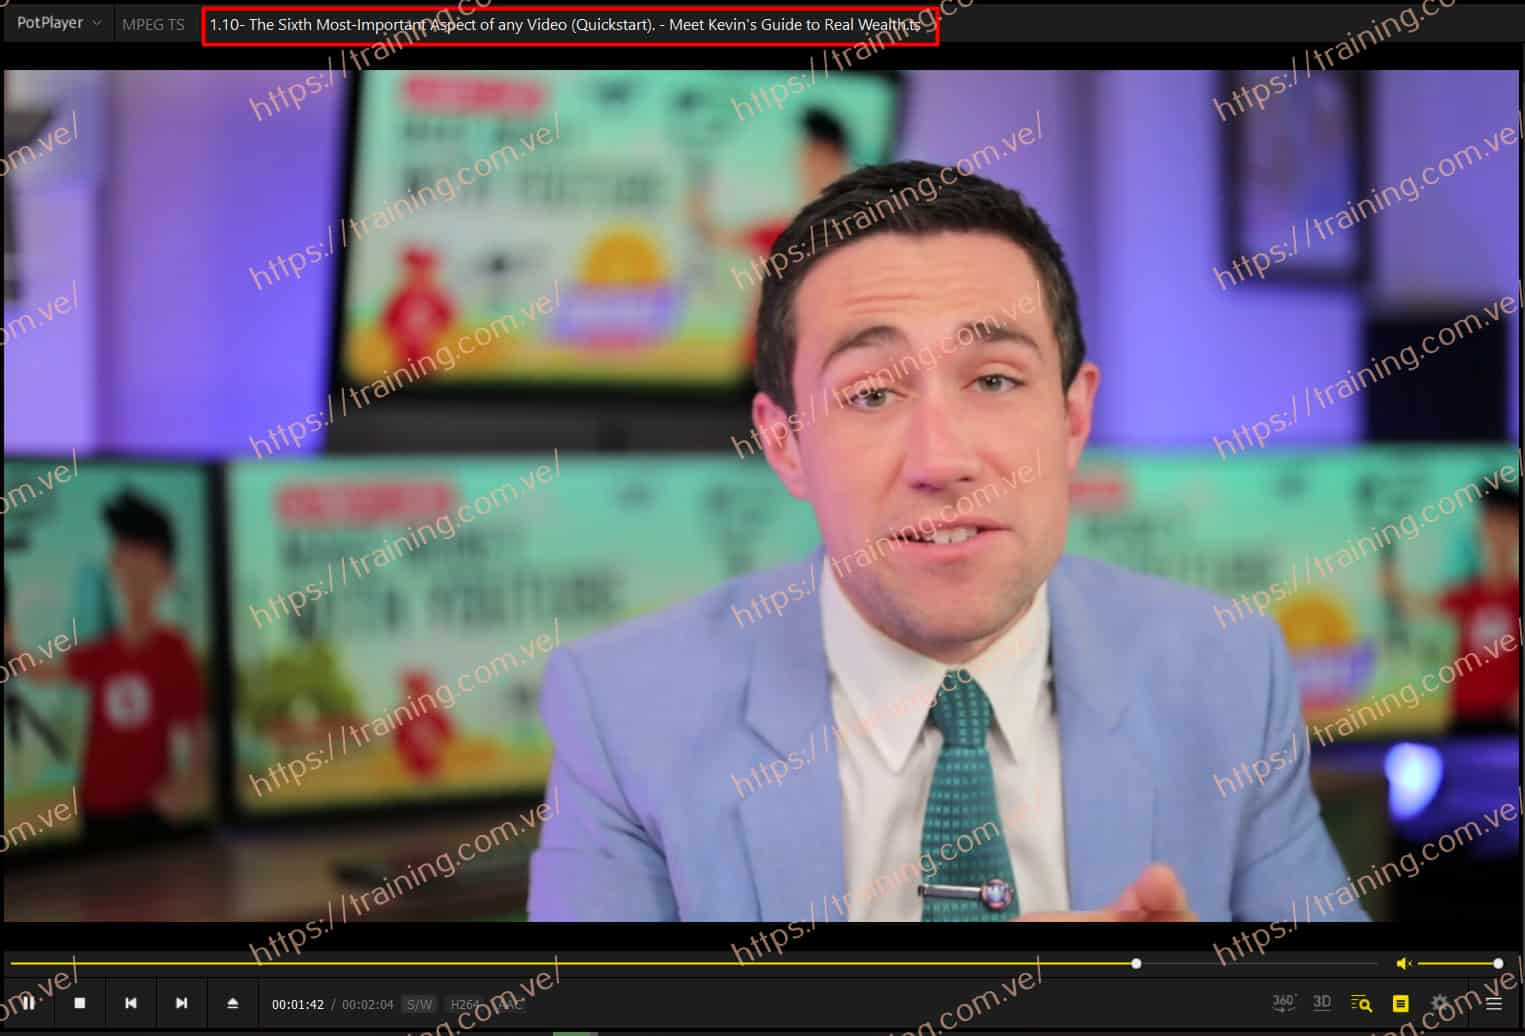 Build Wealth Making Youtube Videos by Kevin Sale